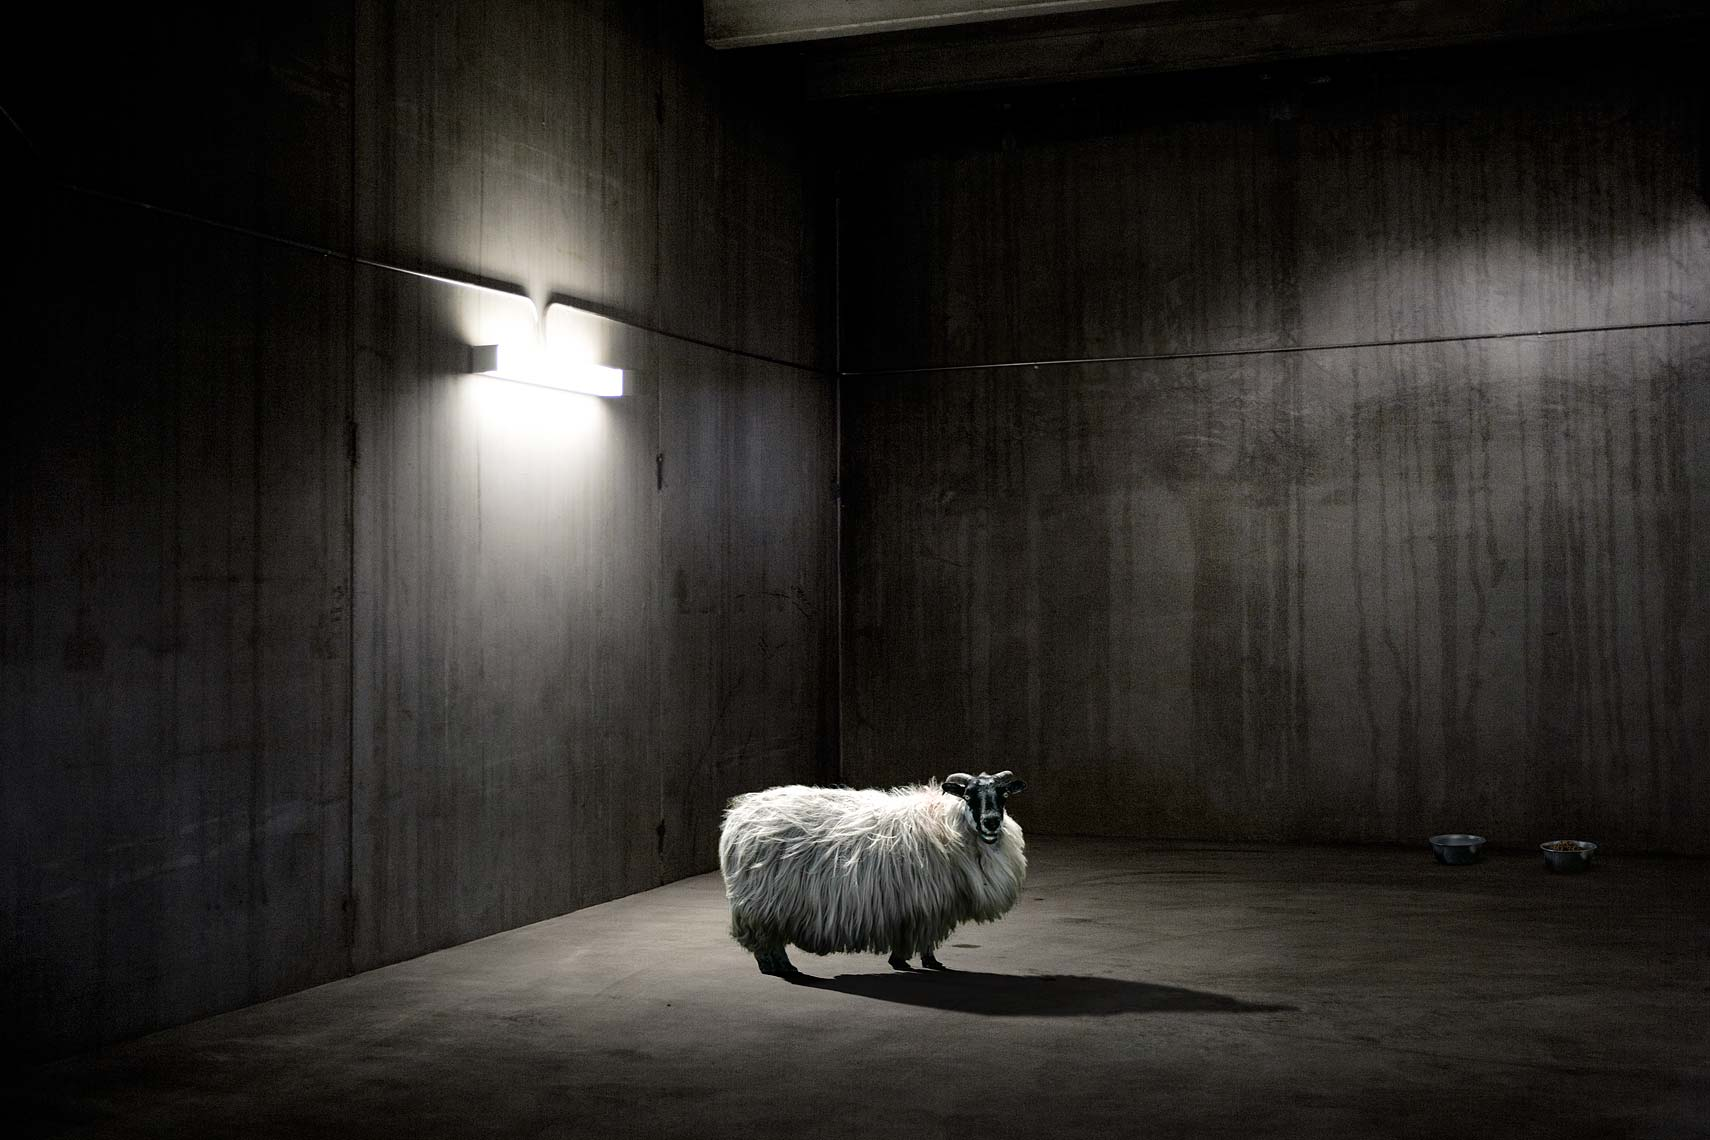 sheep-in-garage-WIP-3-flat